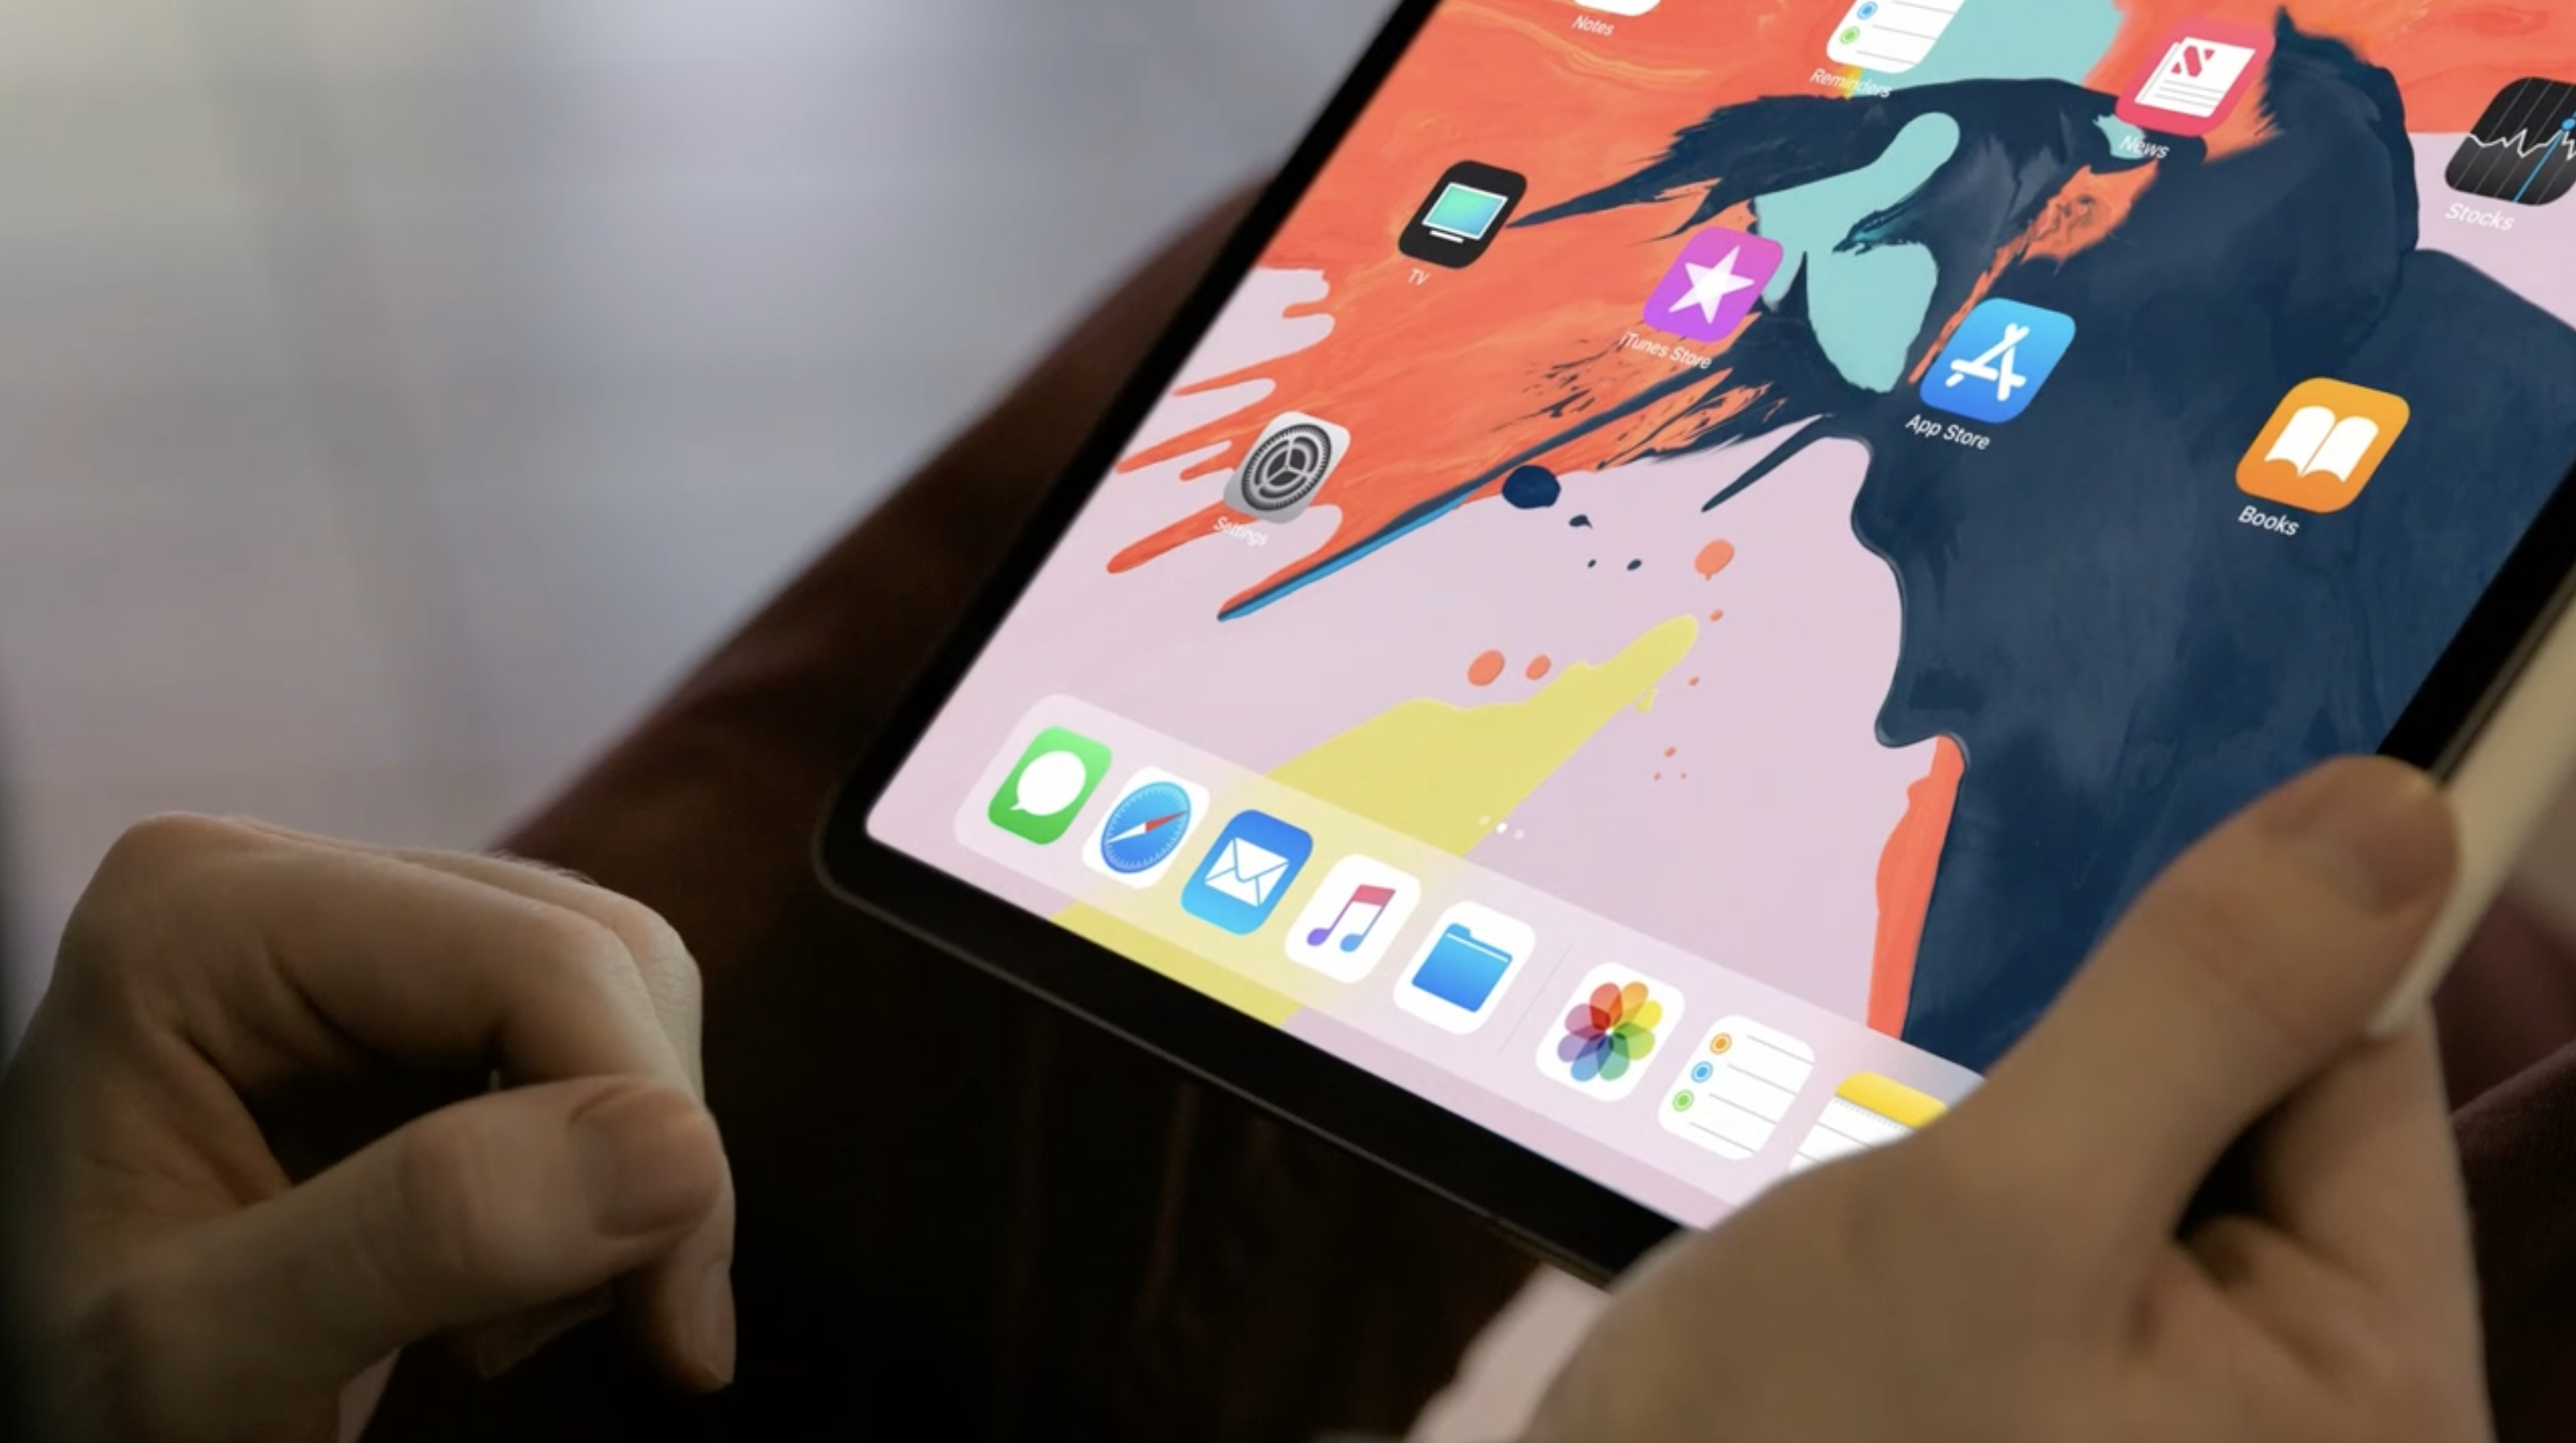 New iPad Pro replacement costs hit $649, AppleCare+ may be